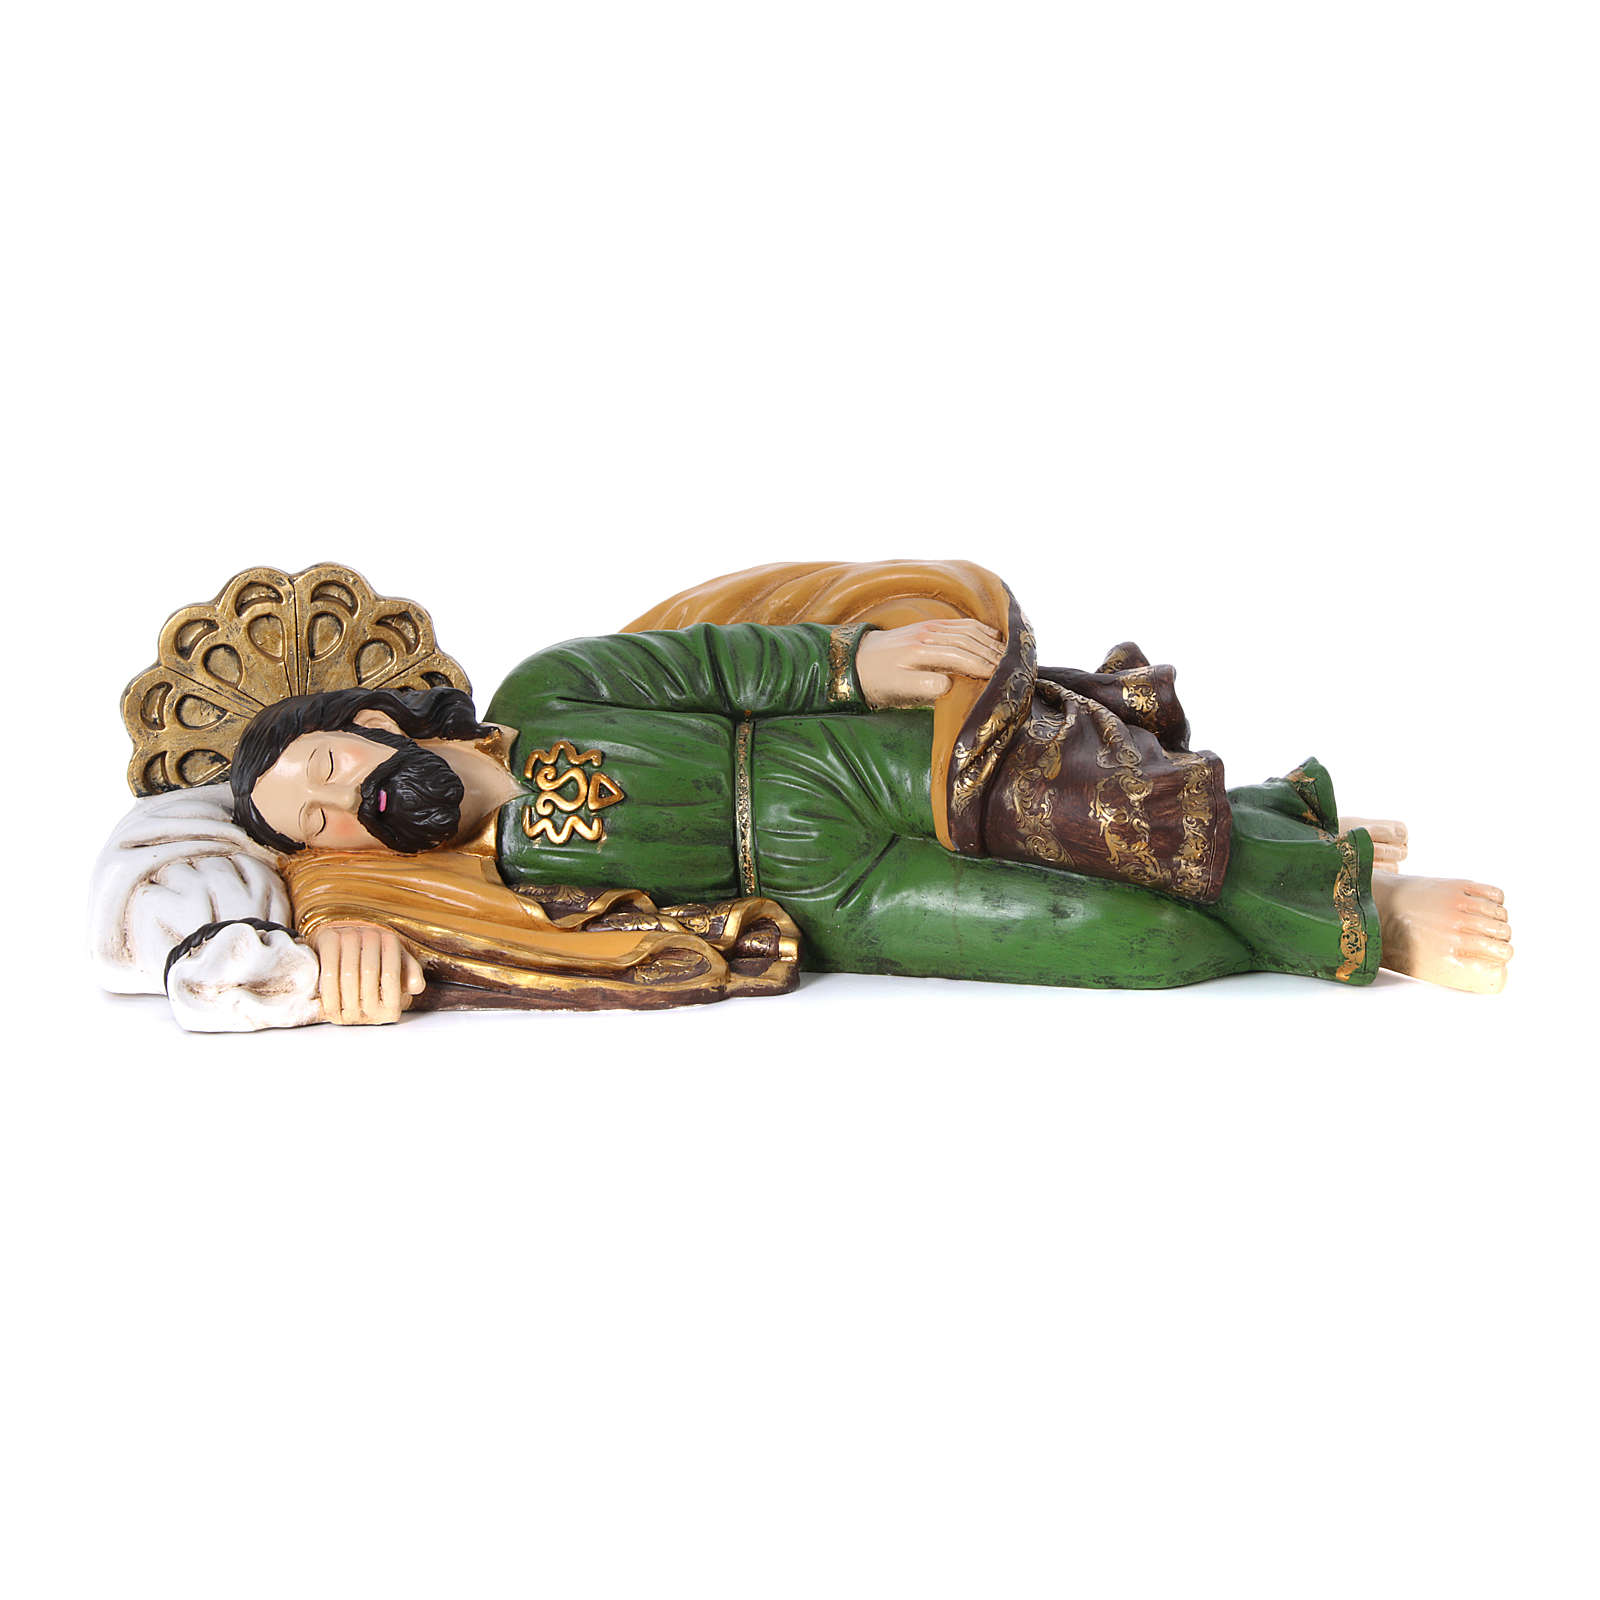 Nativity scene statue Saint Joseph sleeping 100 cm 3